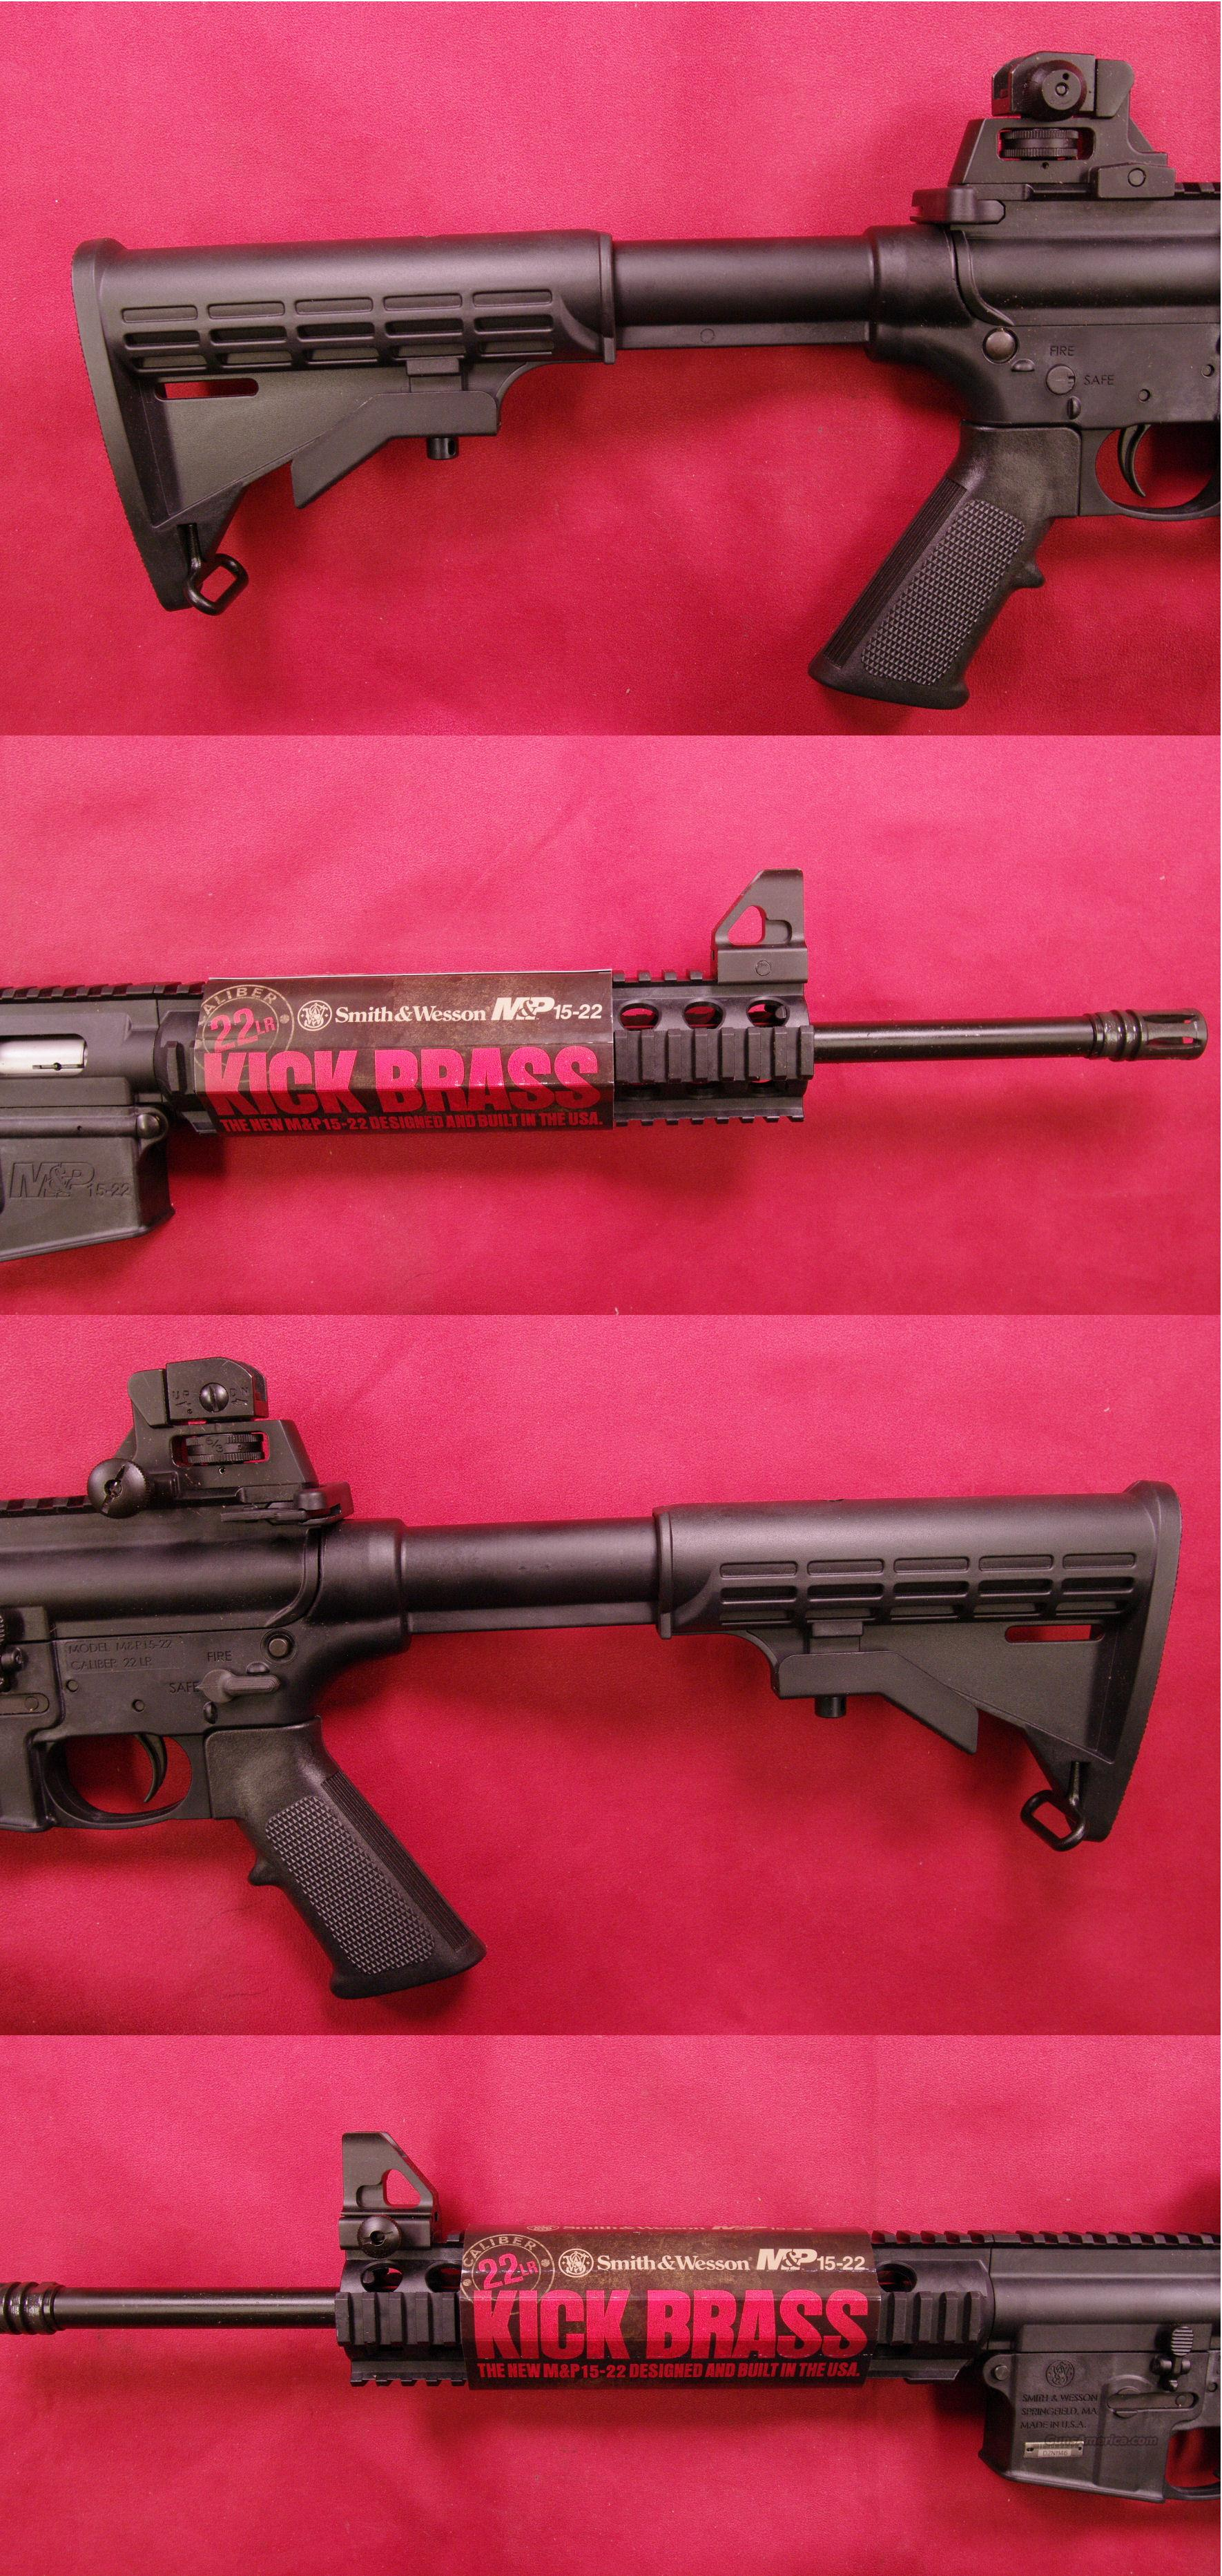 Smith & Wesson M&P-15-22 .22 long Rifle*MUST CALL*  Guns > Rifles > Smith & Wesson Rifles > M&P